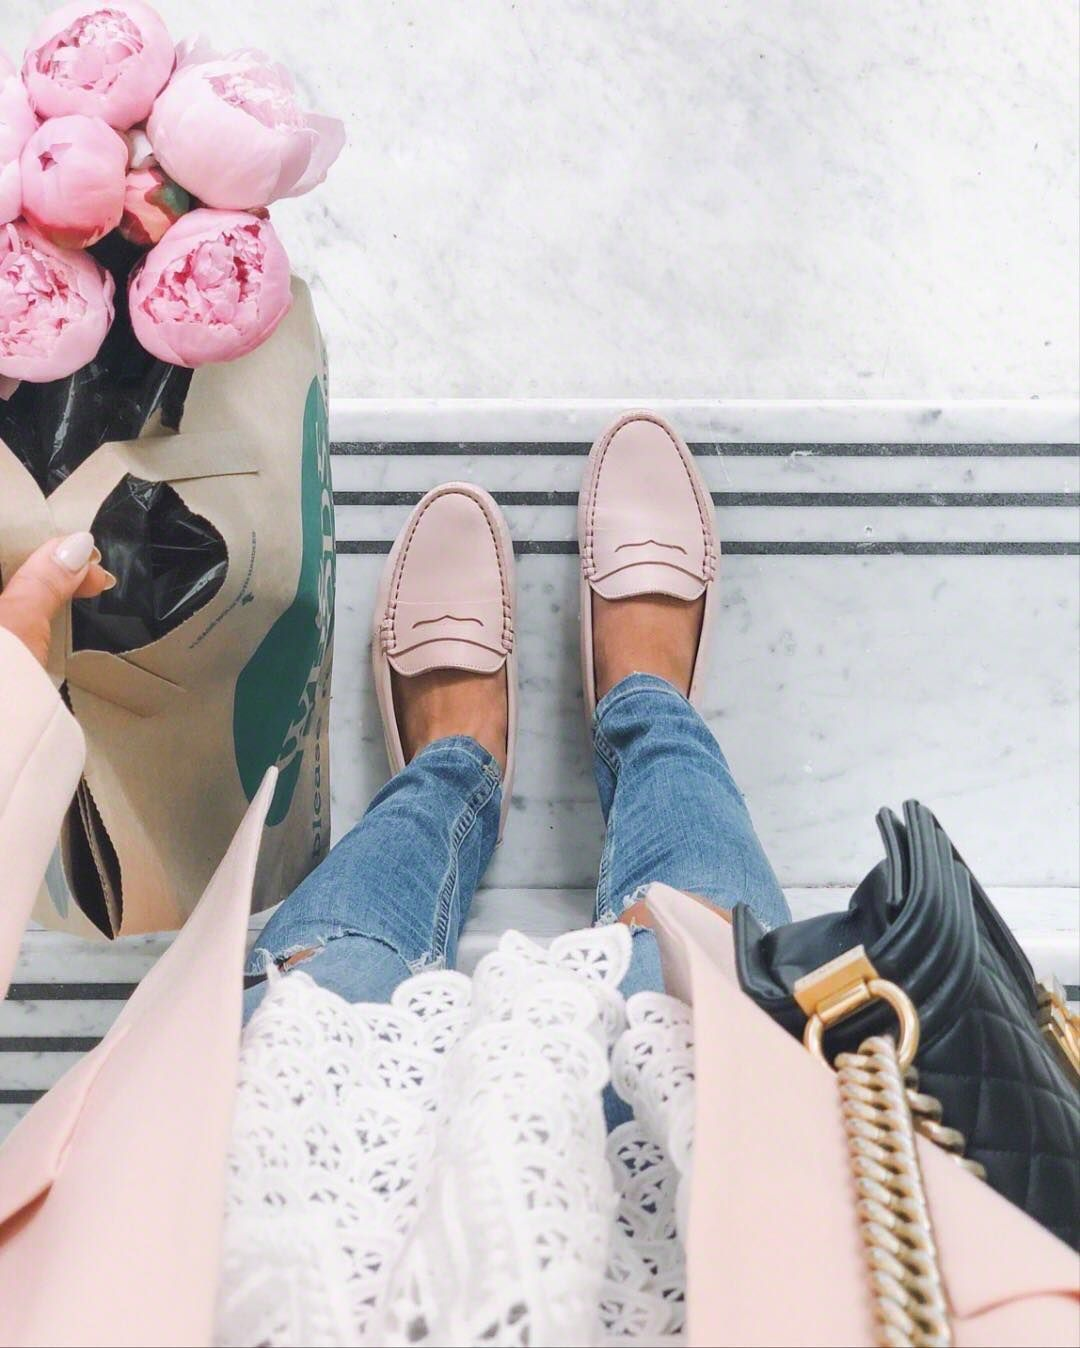 Blush loafers, distressed jeans, lace tee and pink peonies for a fresh spring ou…